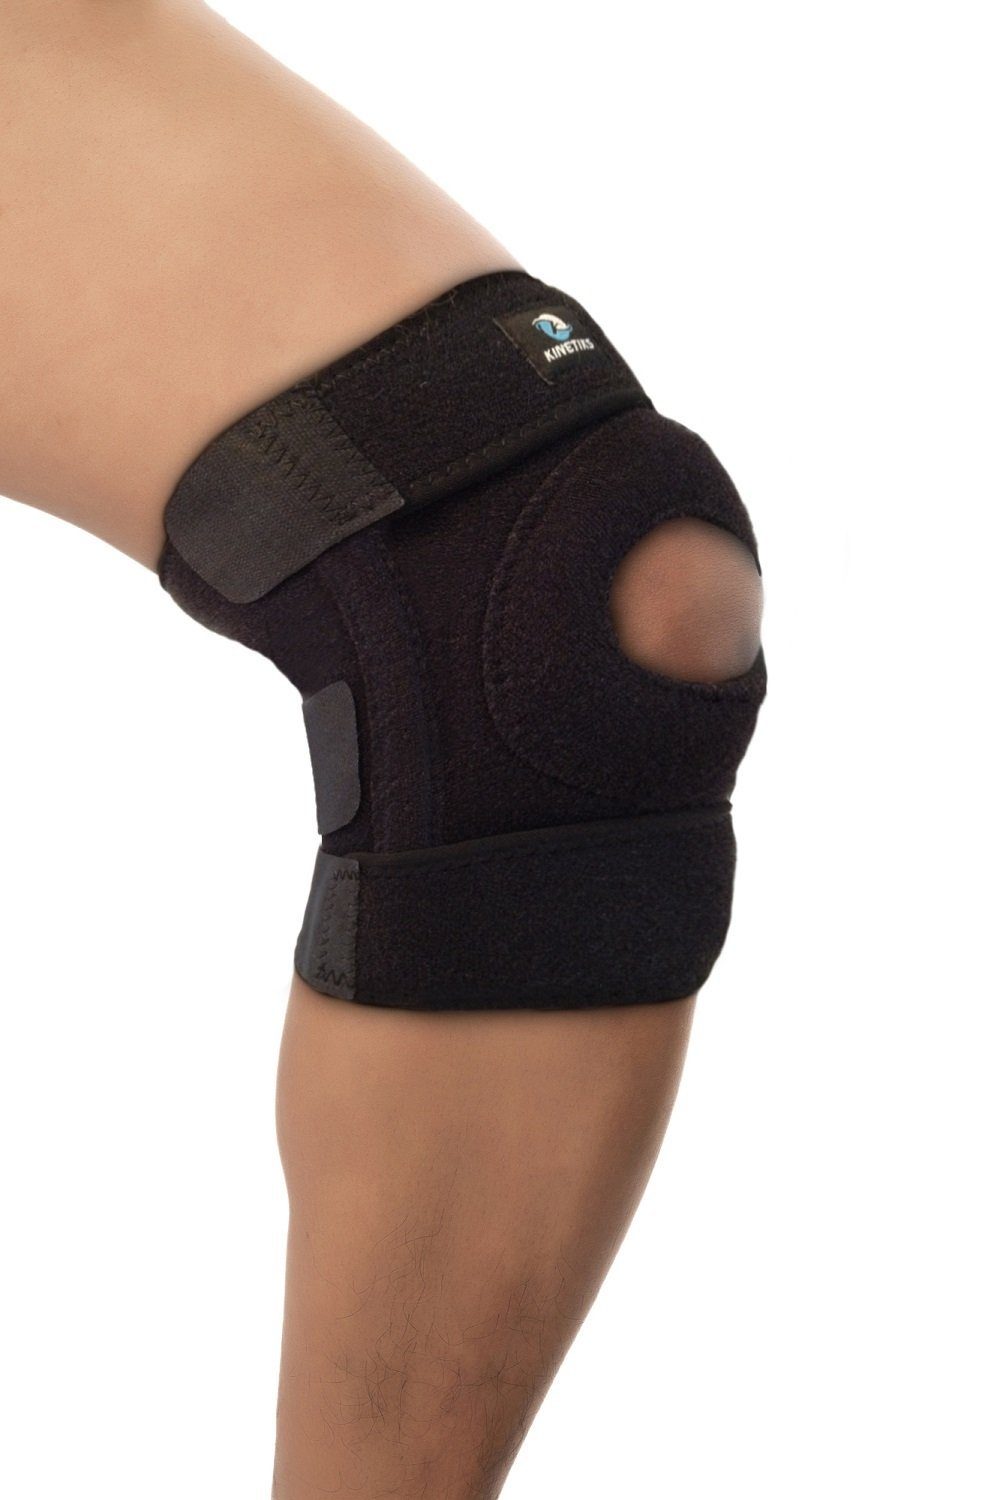 Best Choice Knee Brace Support